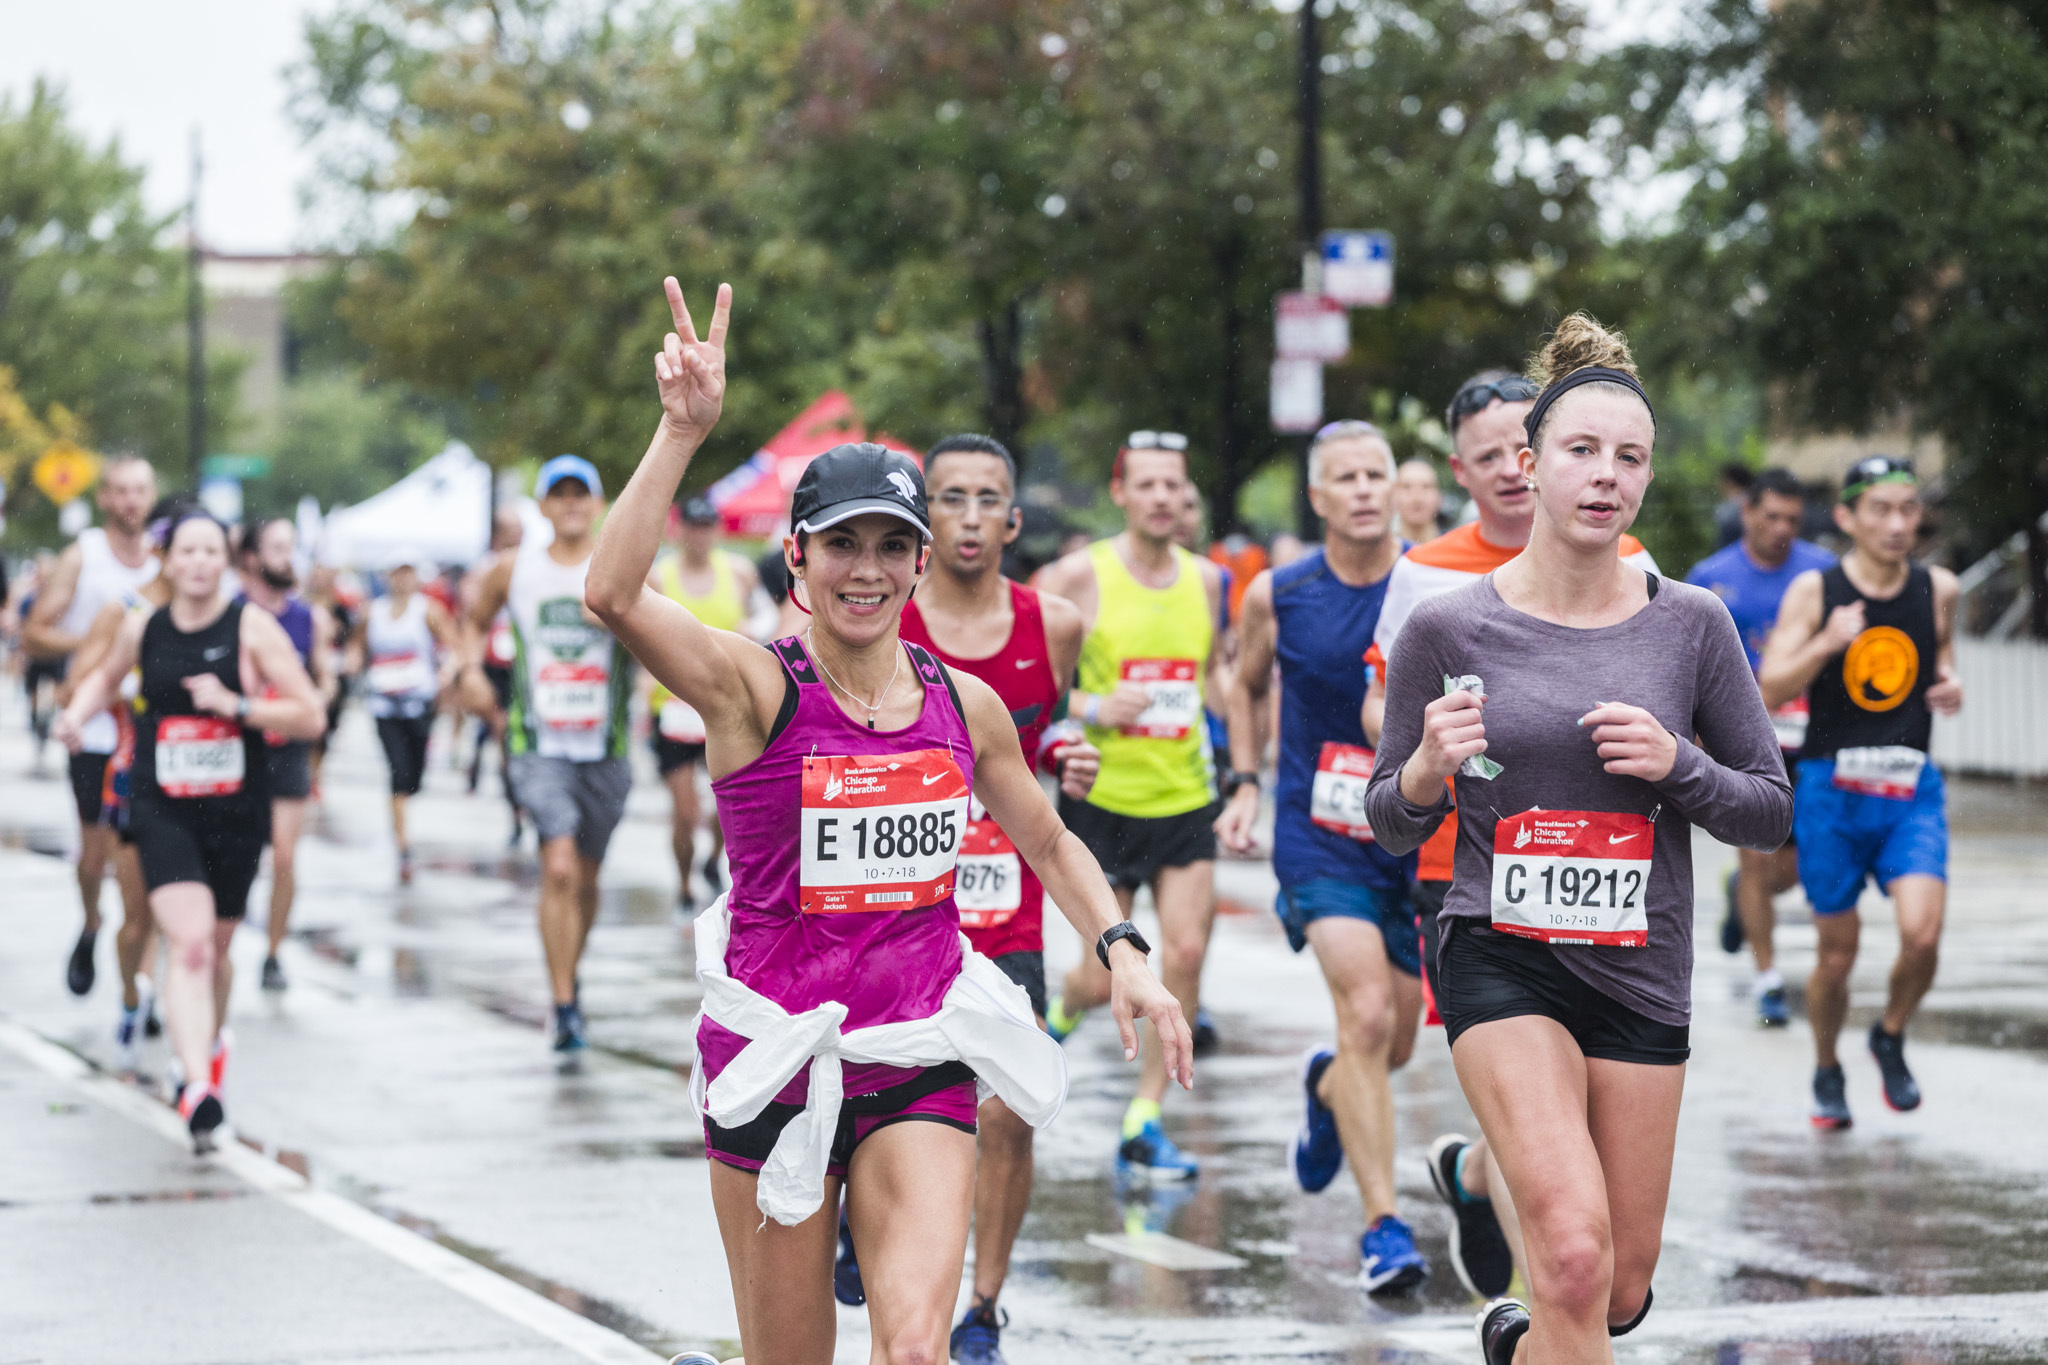 Photos from the course at the Chicago Marathon 2018